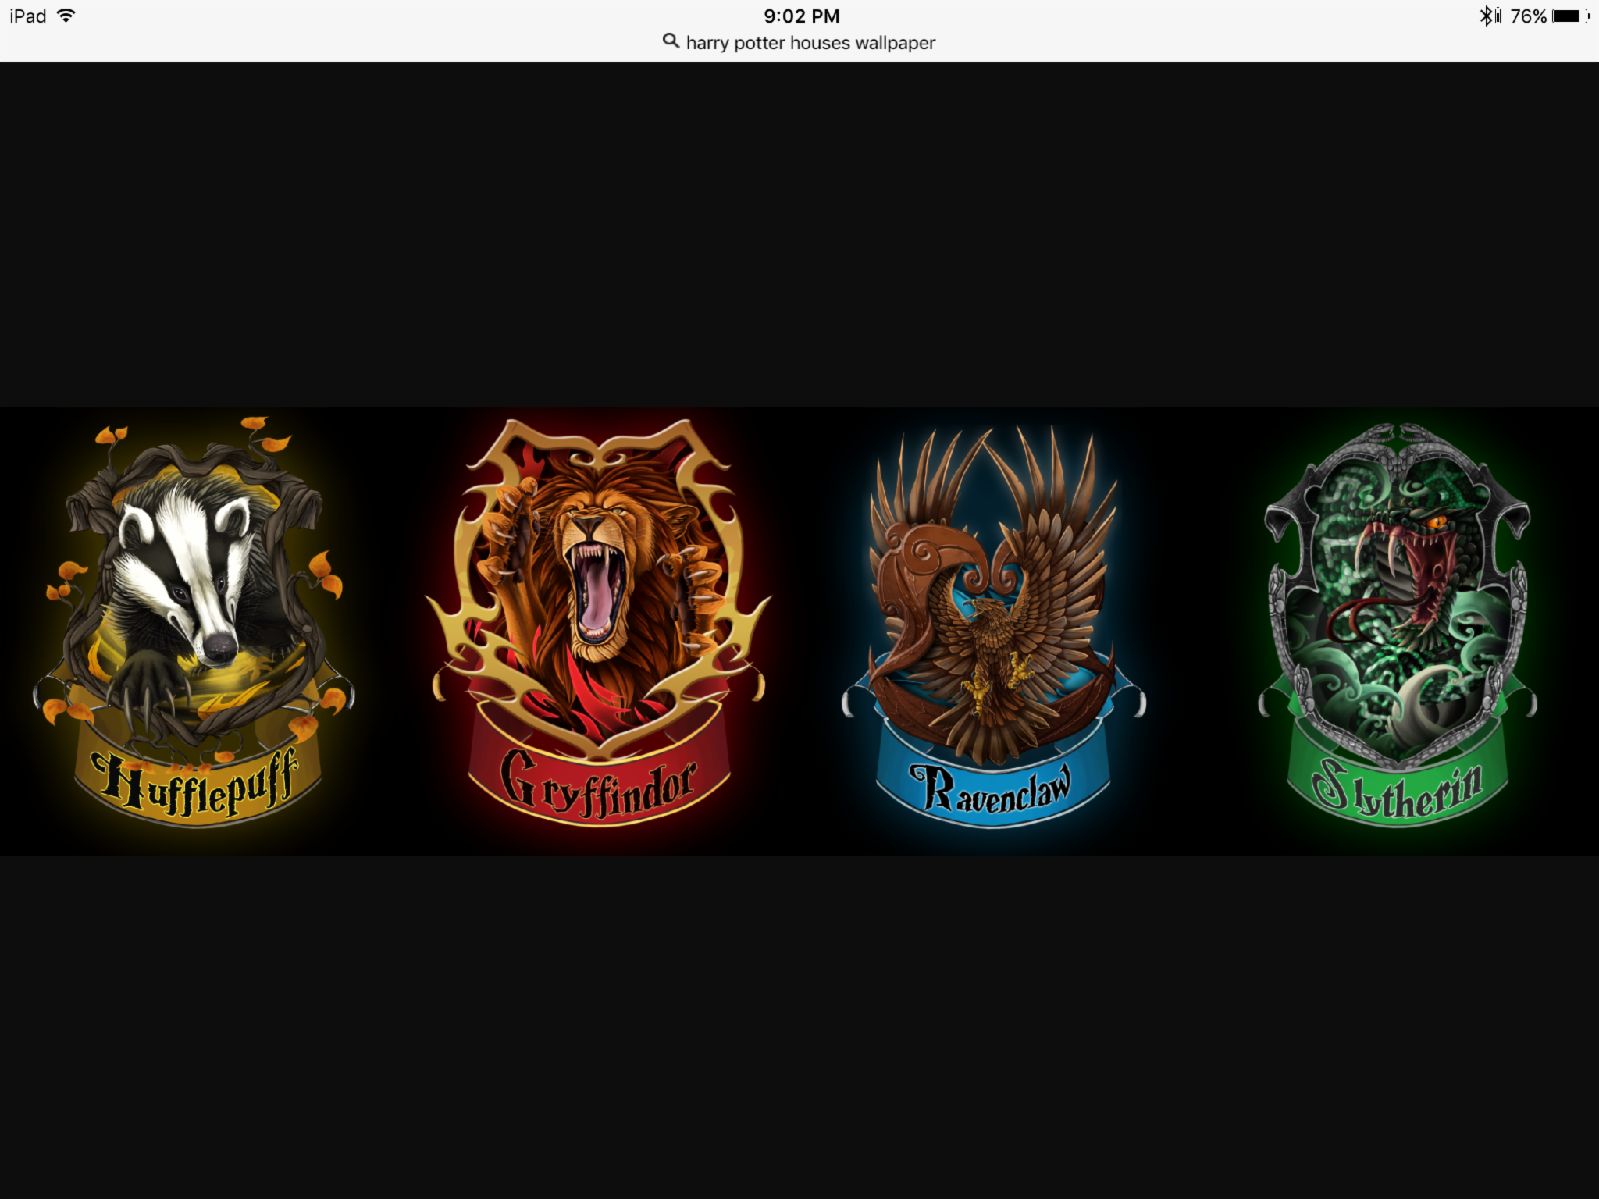 What Harry Potter house are you in? (5)